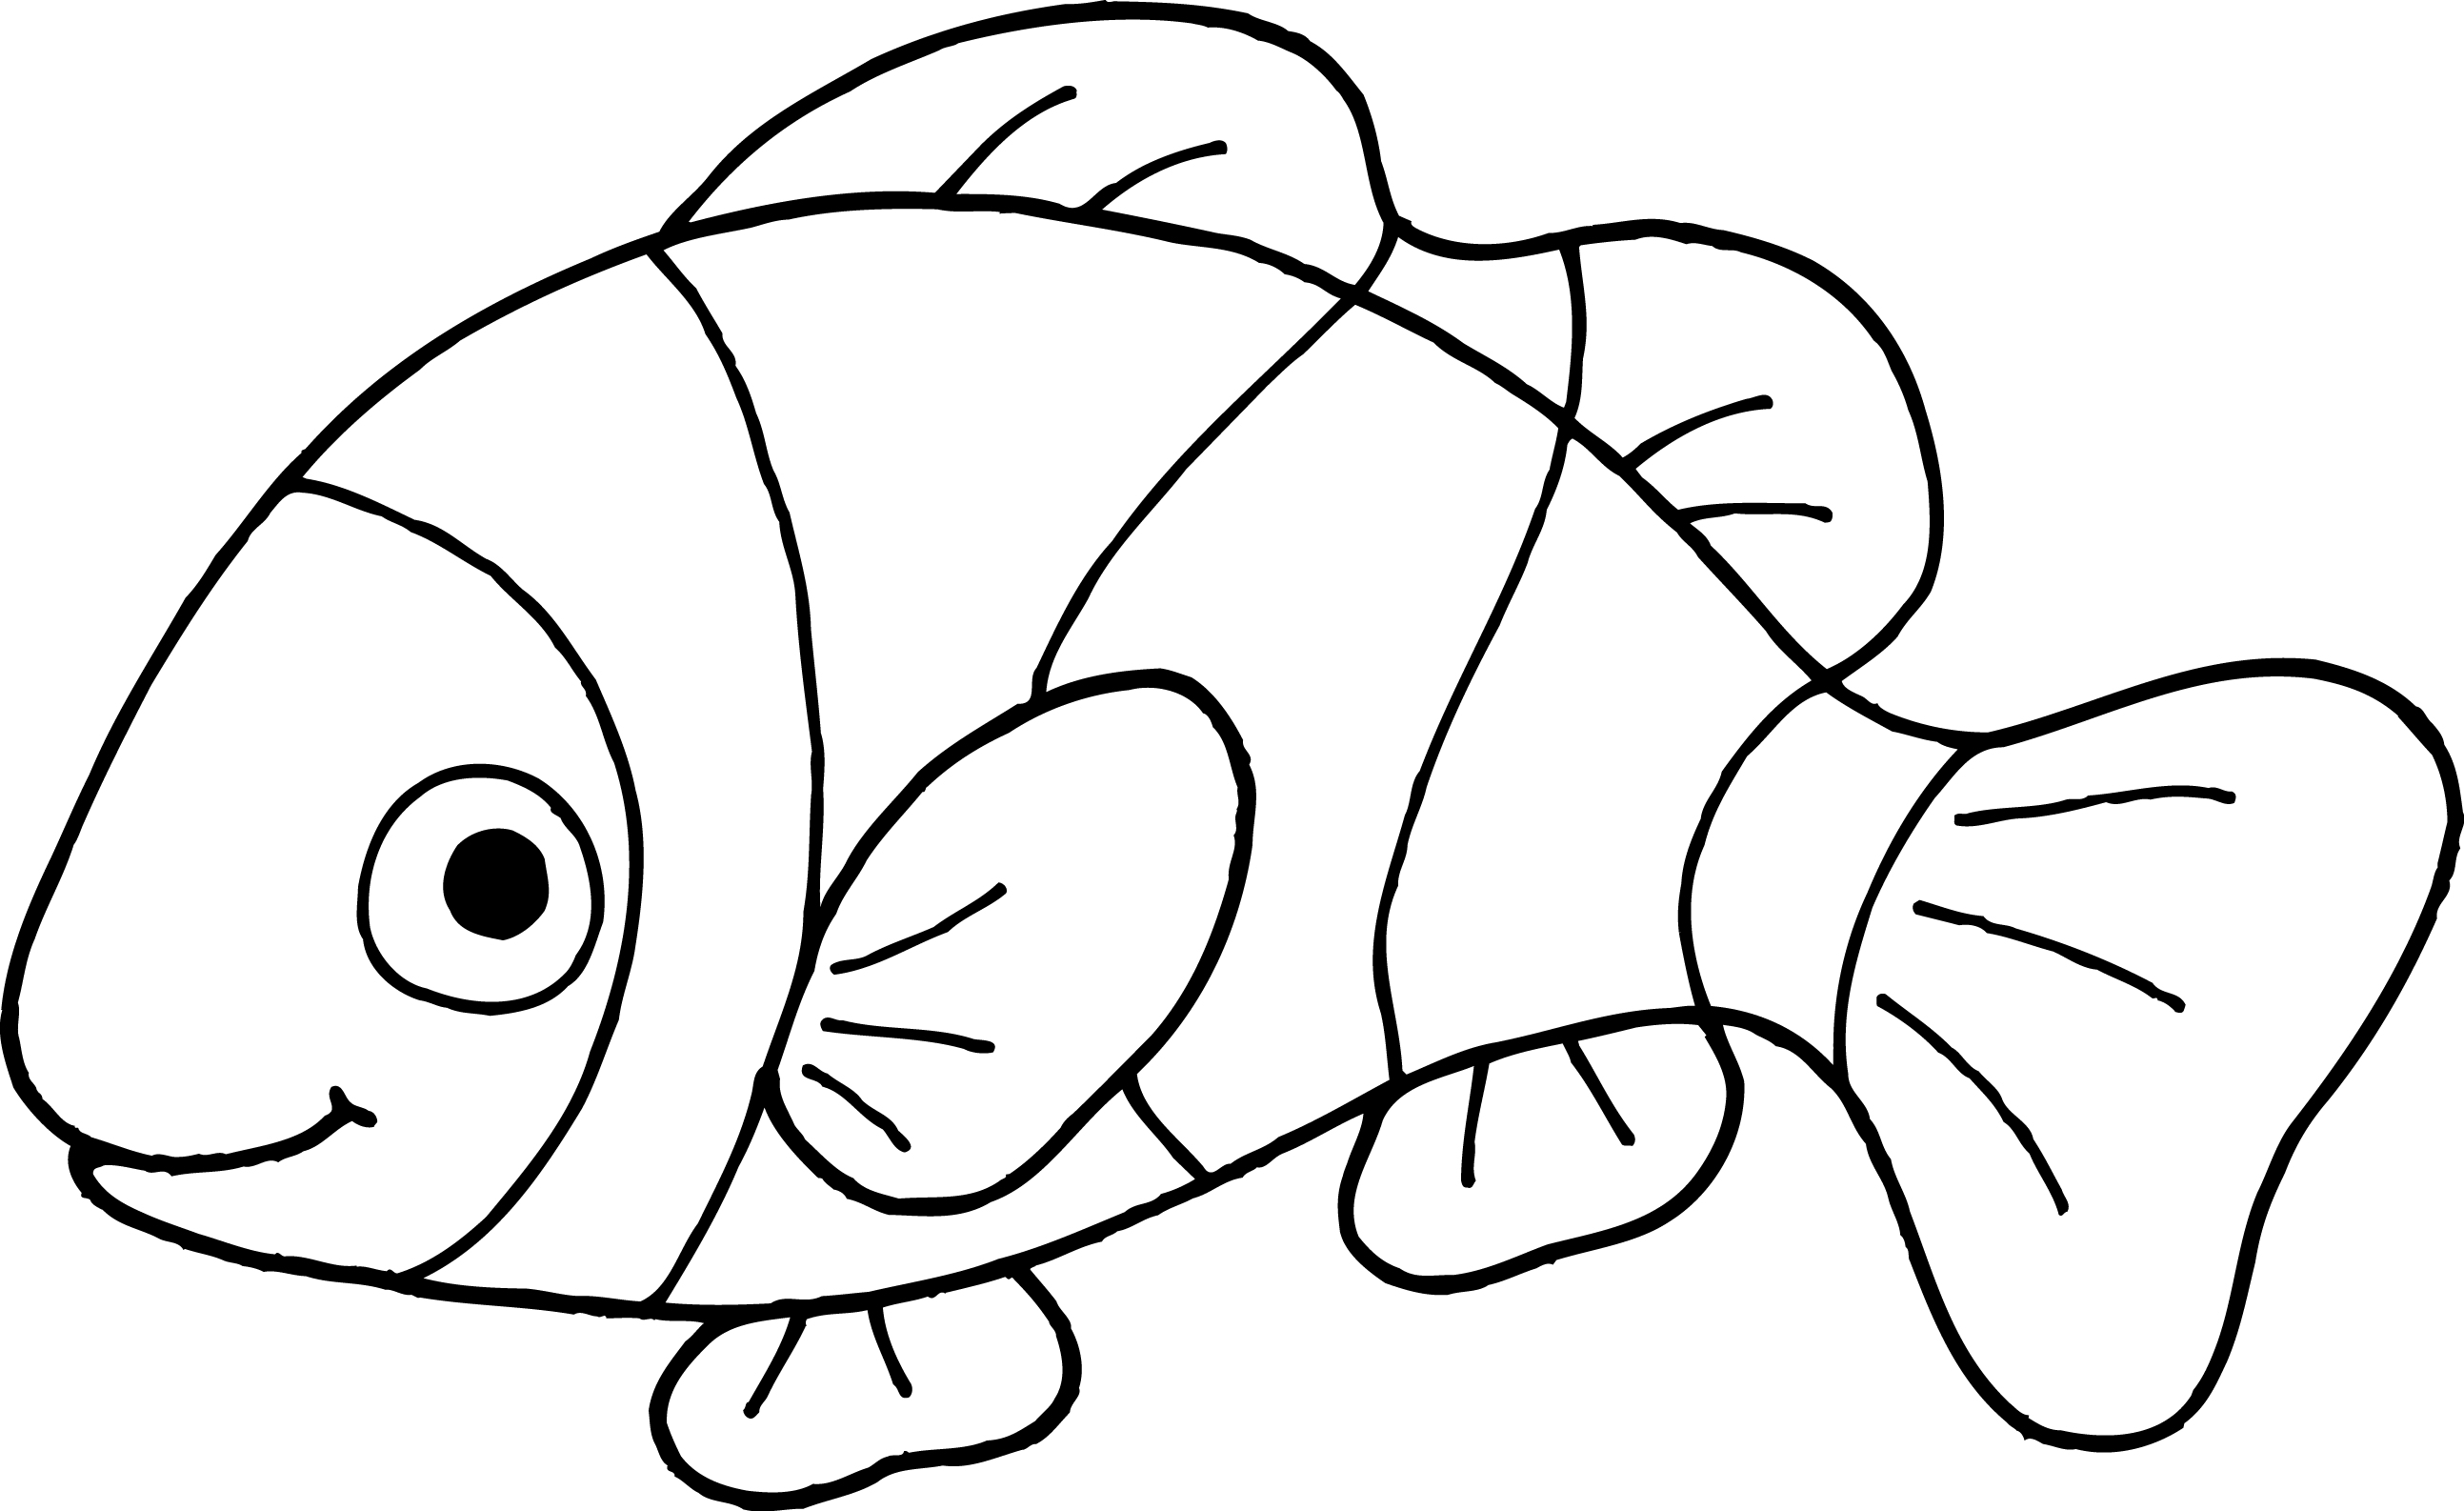 Look after fish clipart black and white jpg free download Free Fish Images Black And White, Download Free Clip Art, Free Clip ... jpg free download